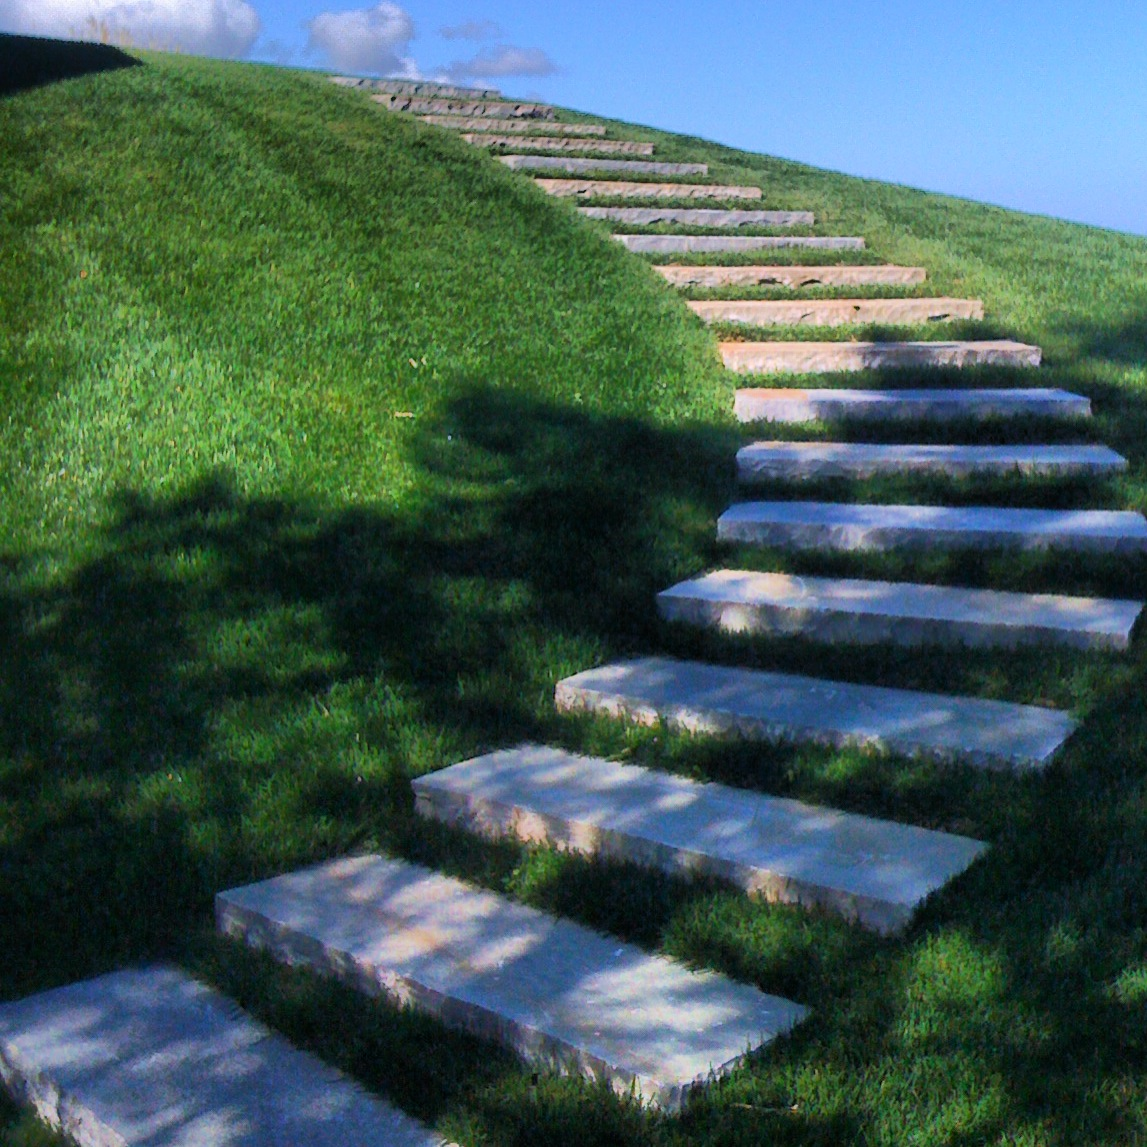 Stone Step Design Turf Joints Petoskey Michigan